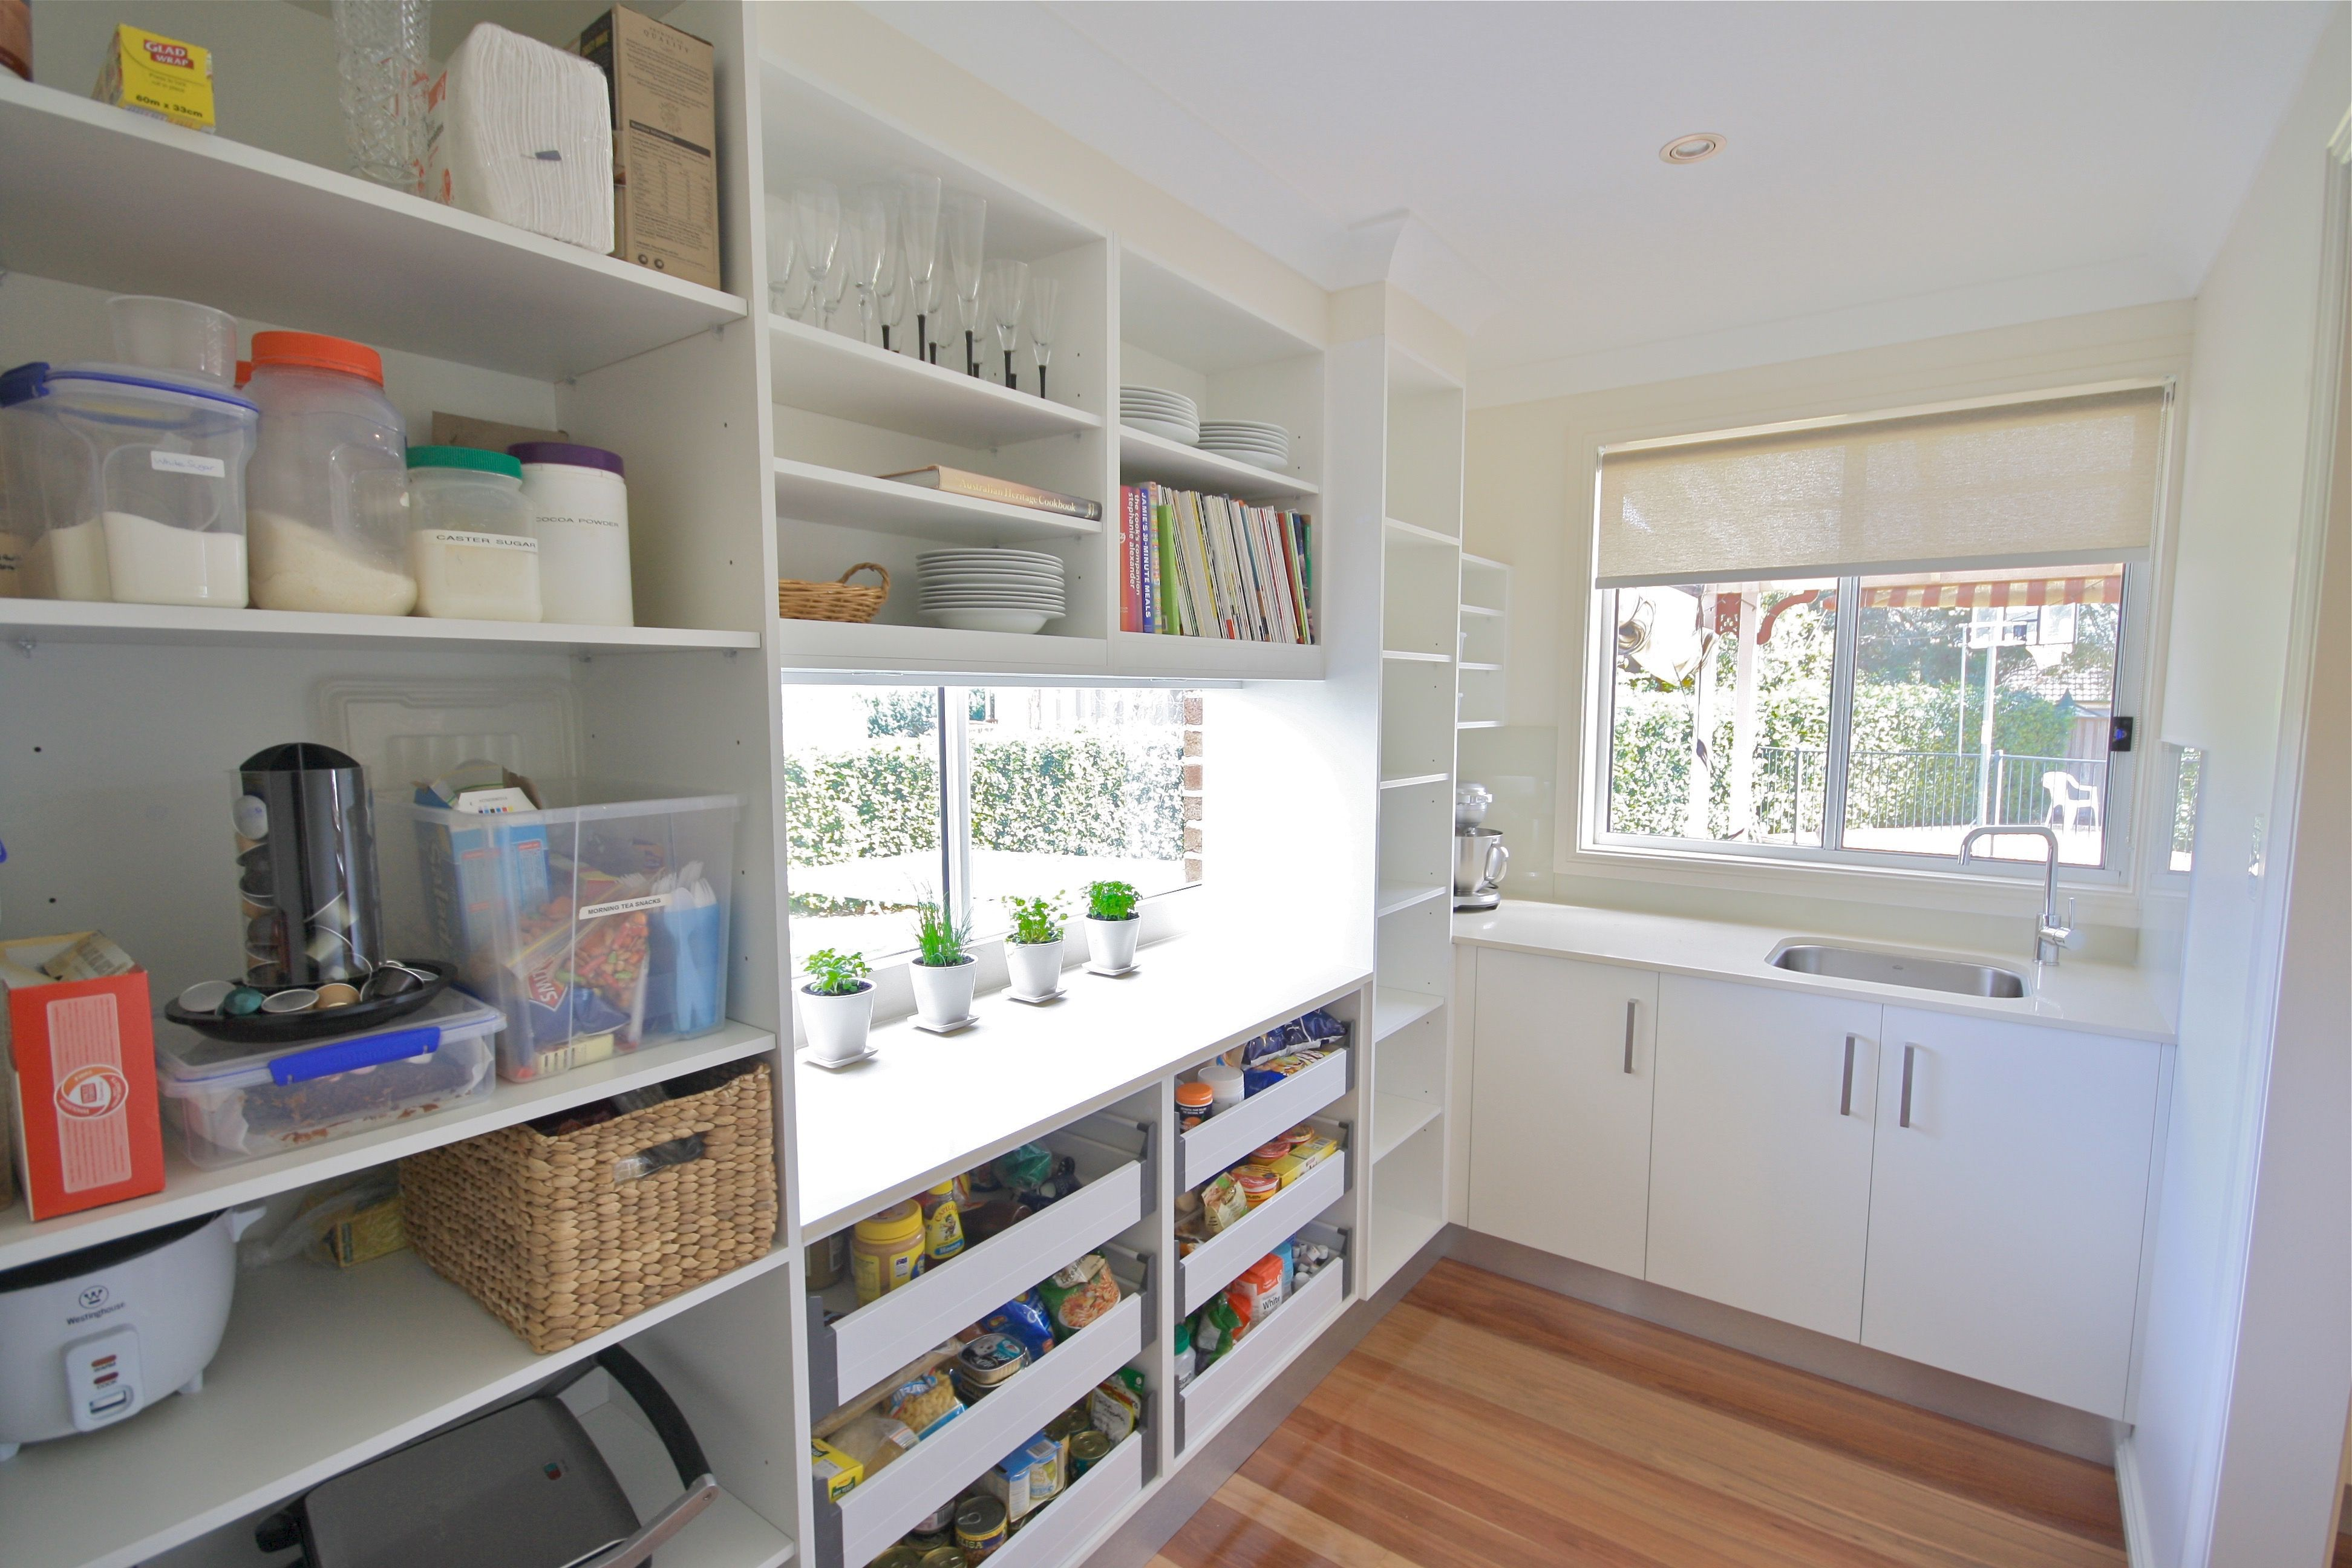 Modern Butlers Pantry Open Adjustable Shelving Drawers Plenty Of Natural Light Kitchensbyemanuel Kbeca Pantry Design Kitchen Pantry Design Pantry Layout